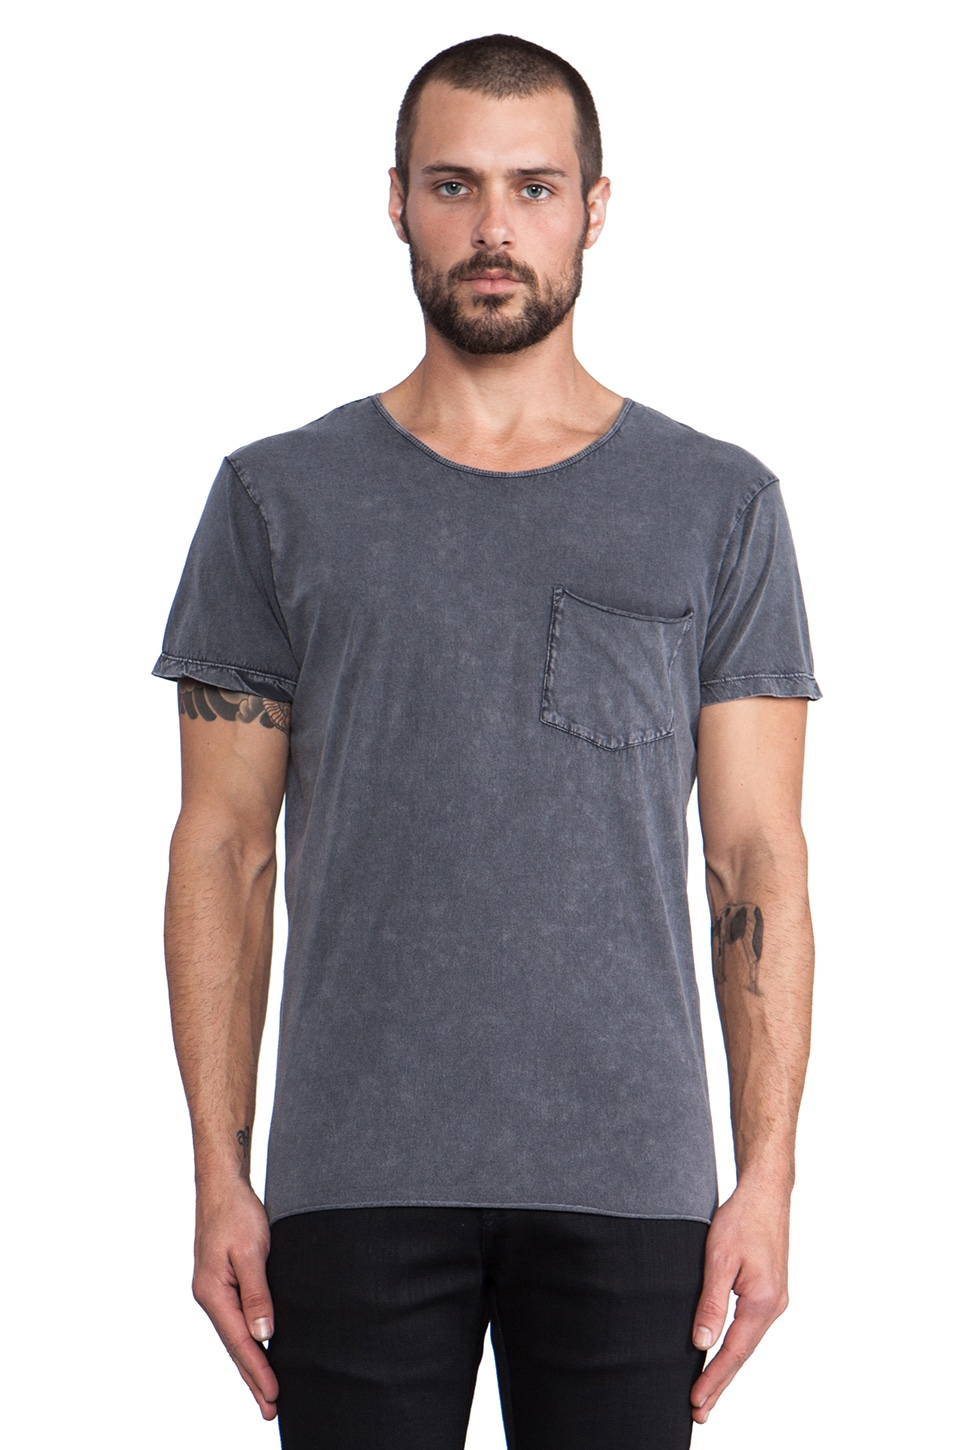 NEUW Enkel Tee in Pigment Grey